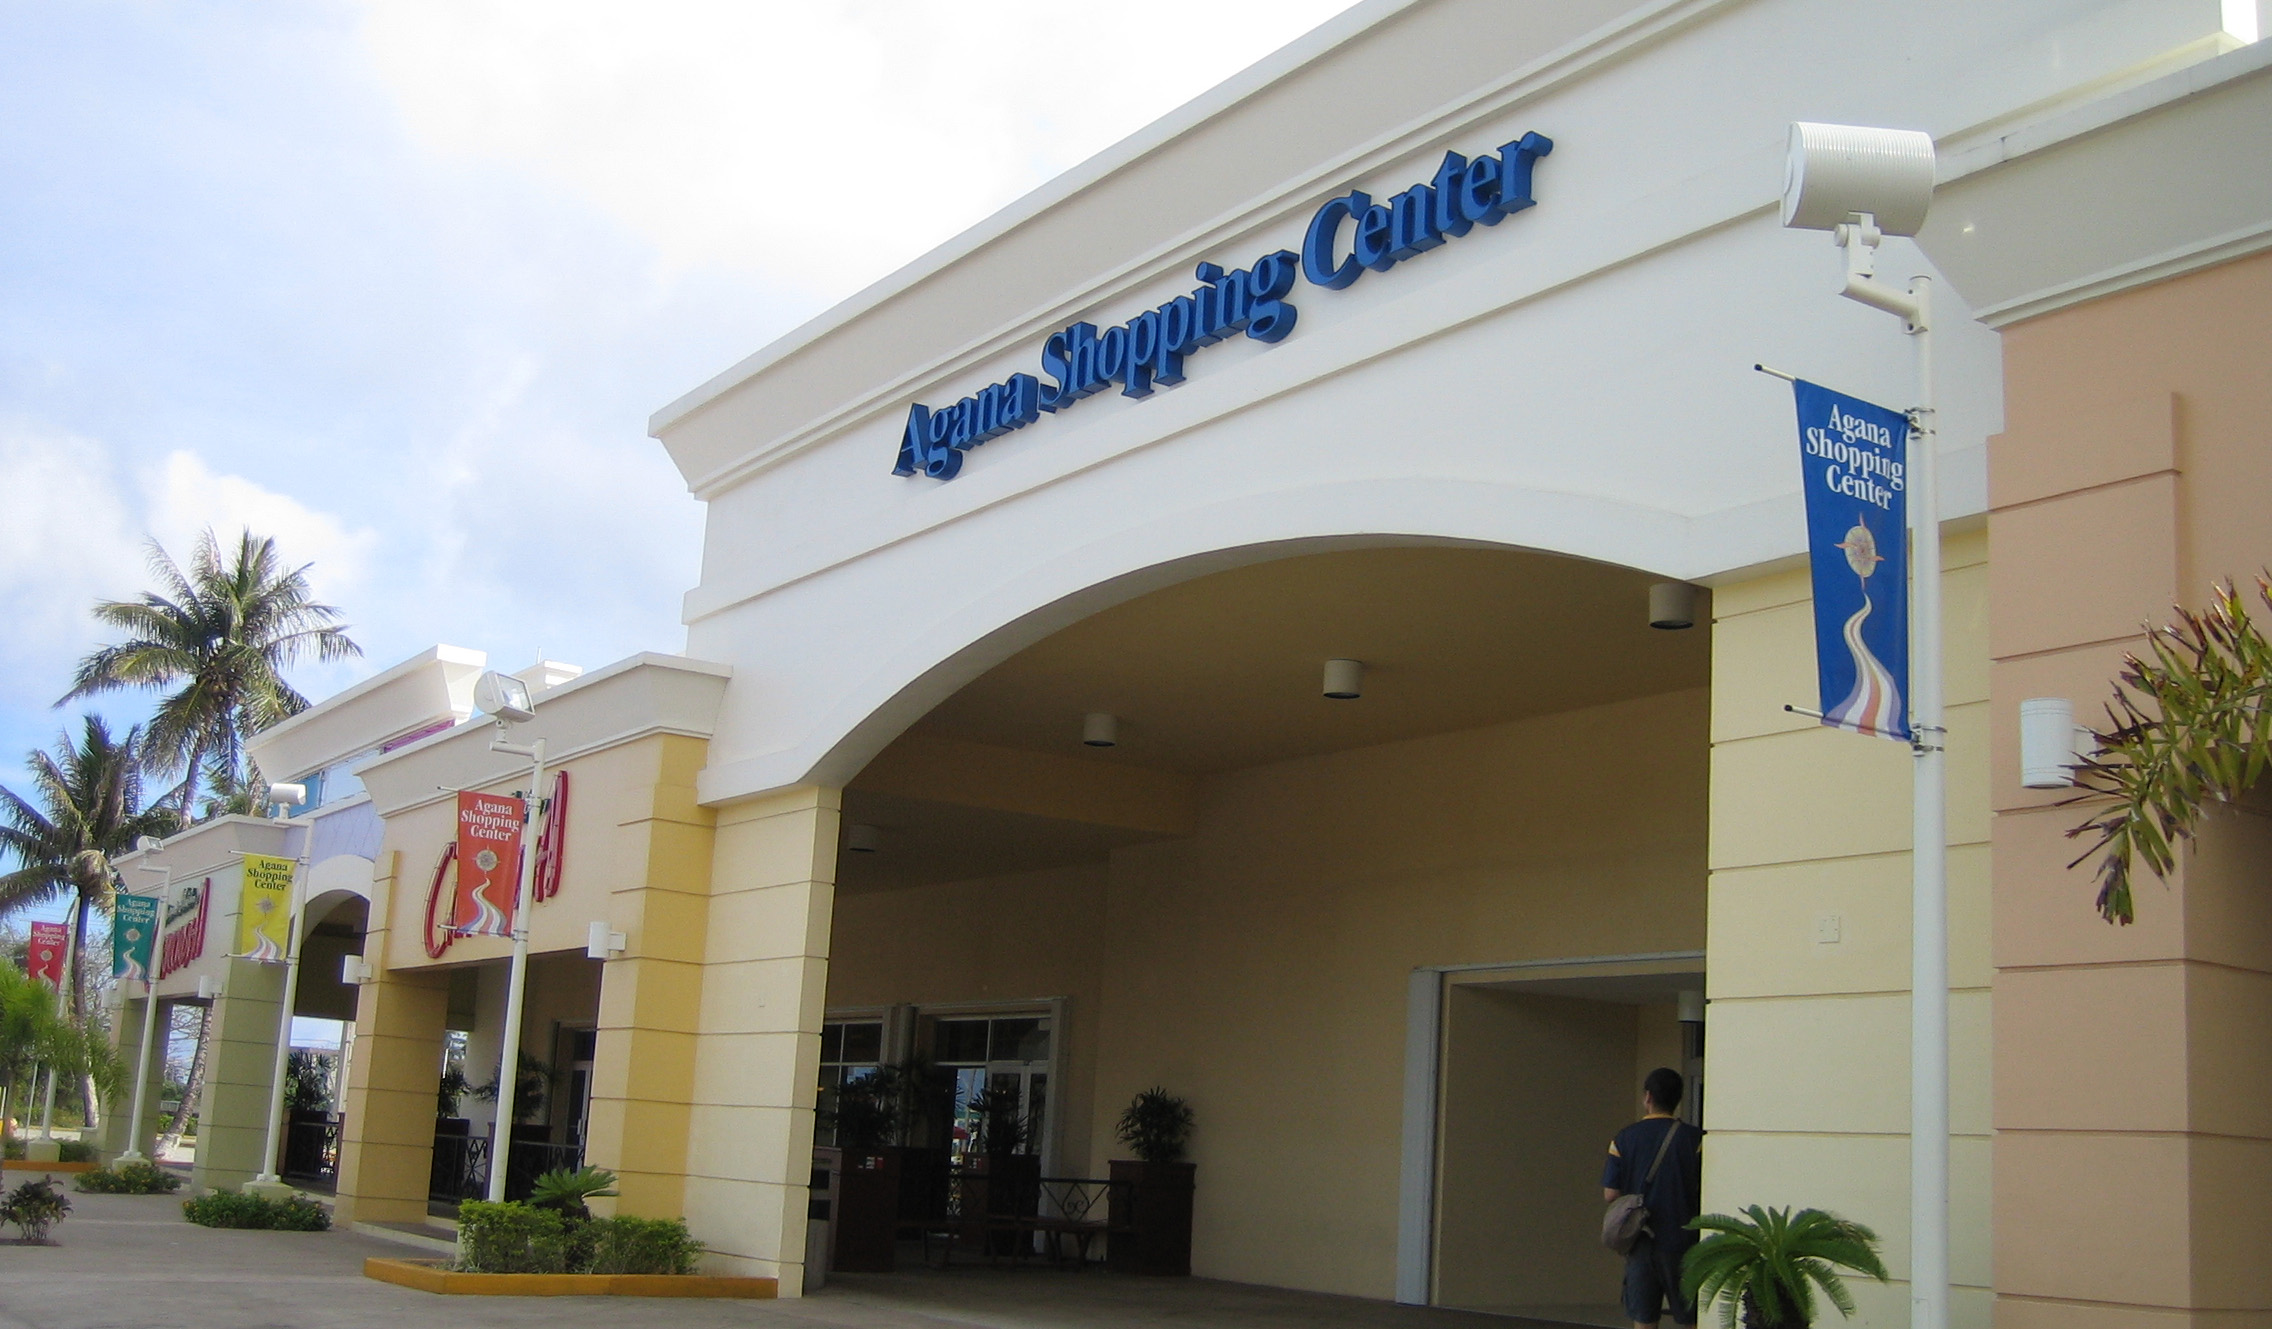 Shopping in Guam